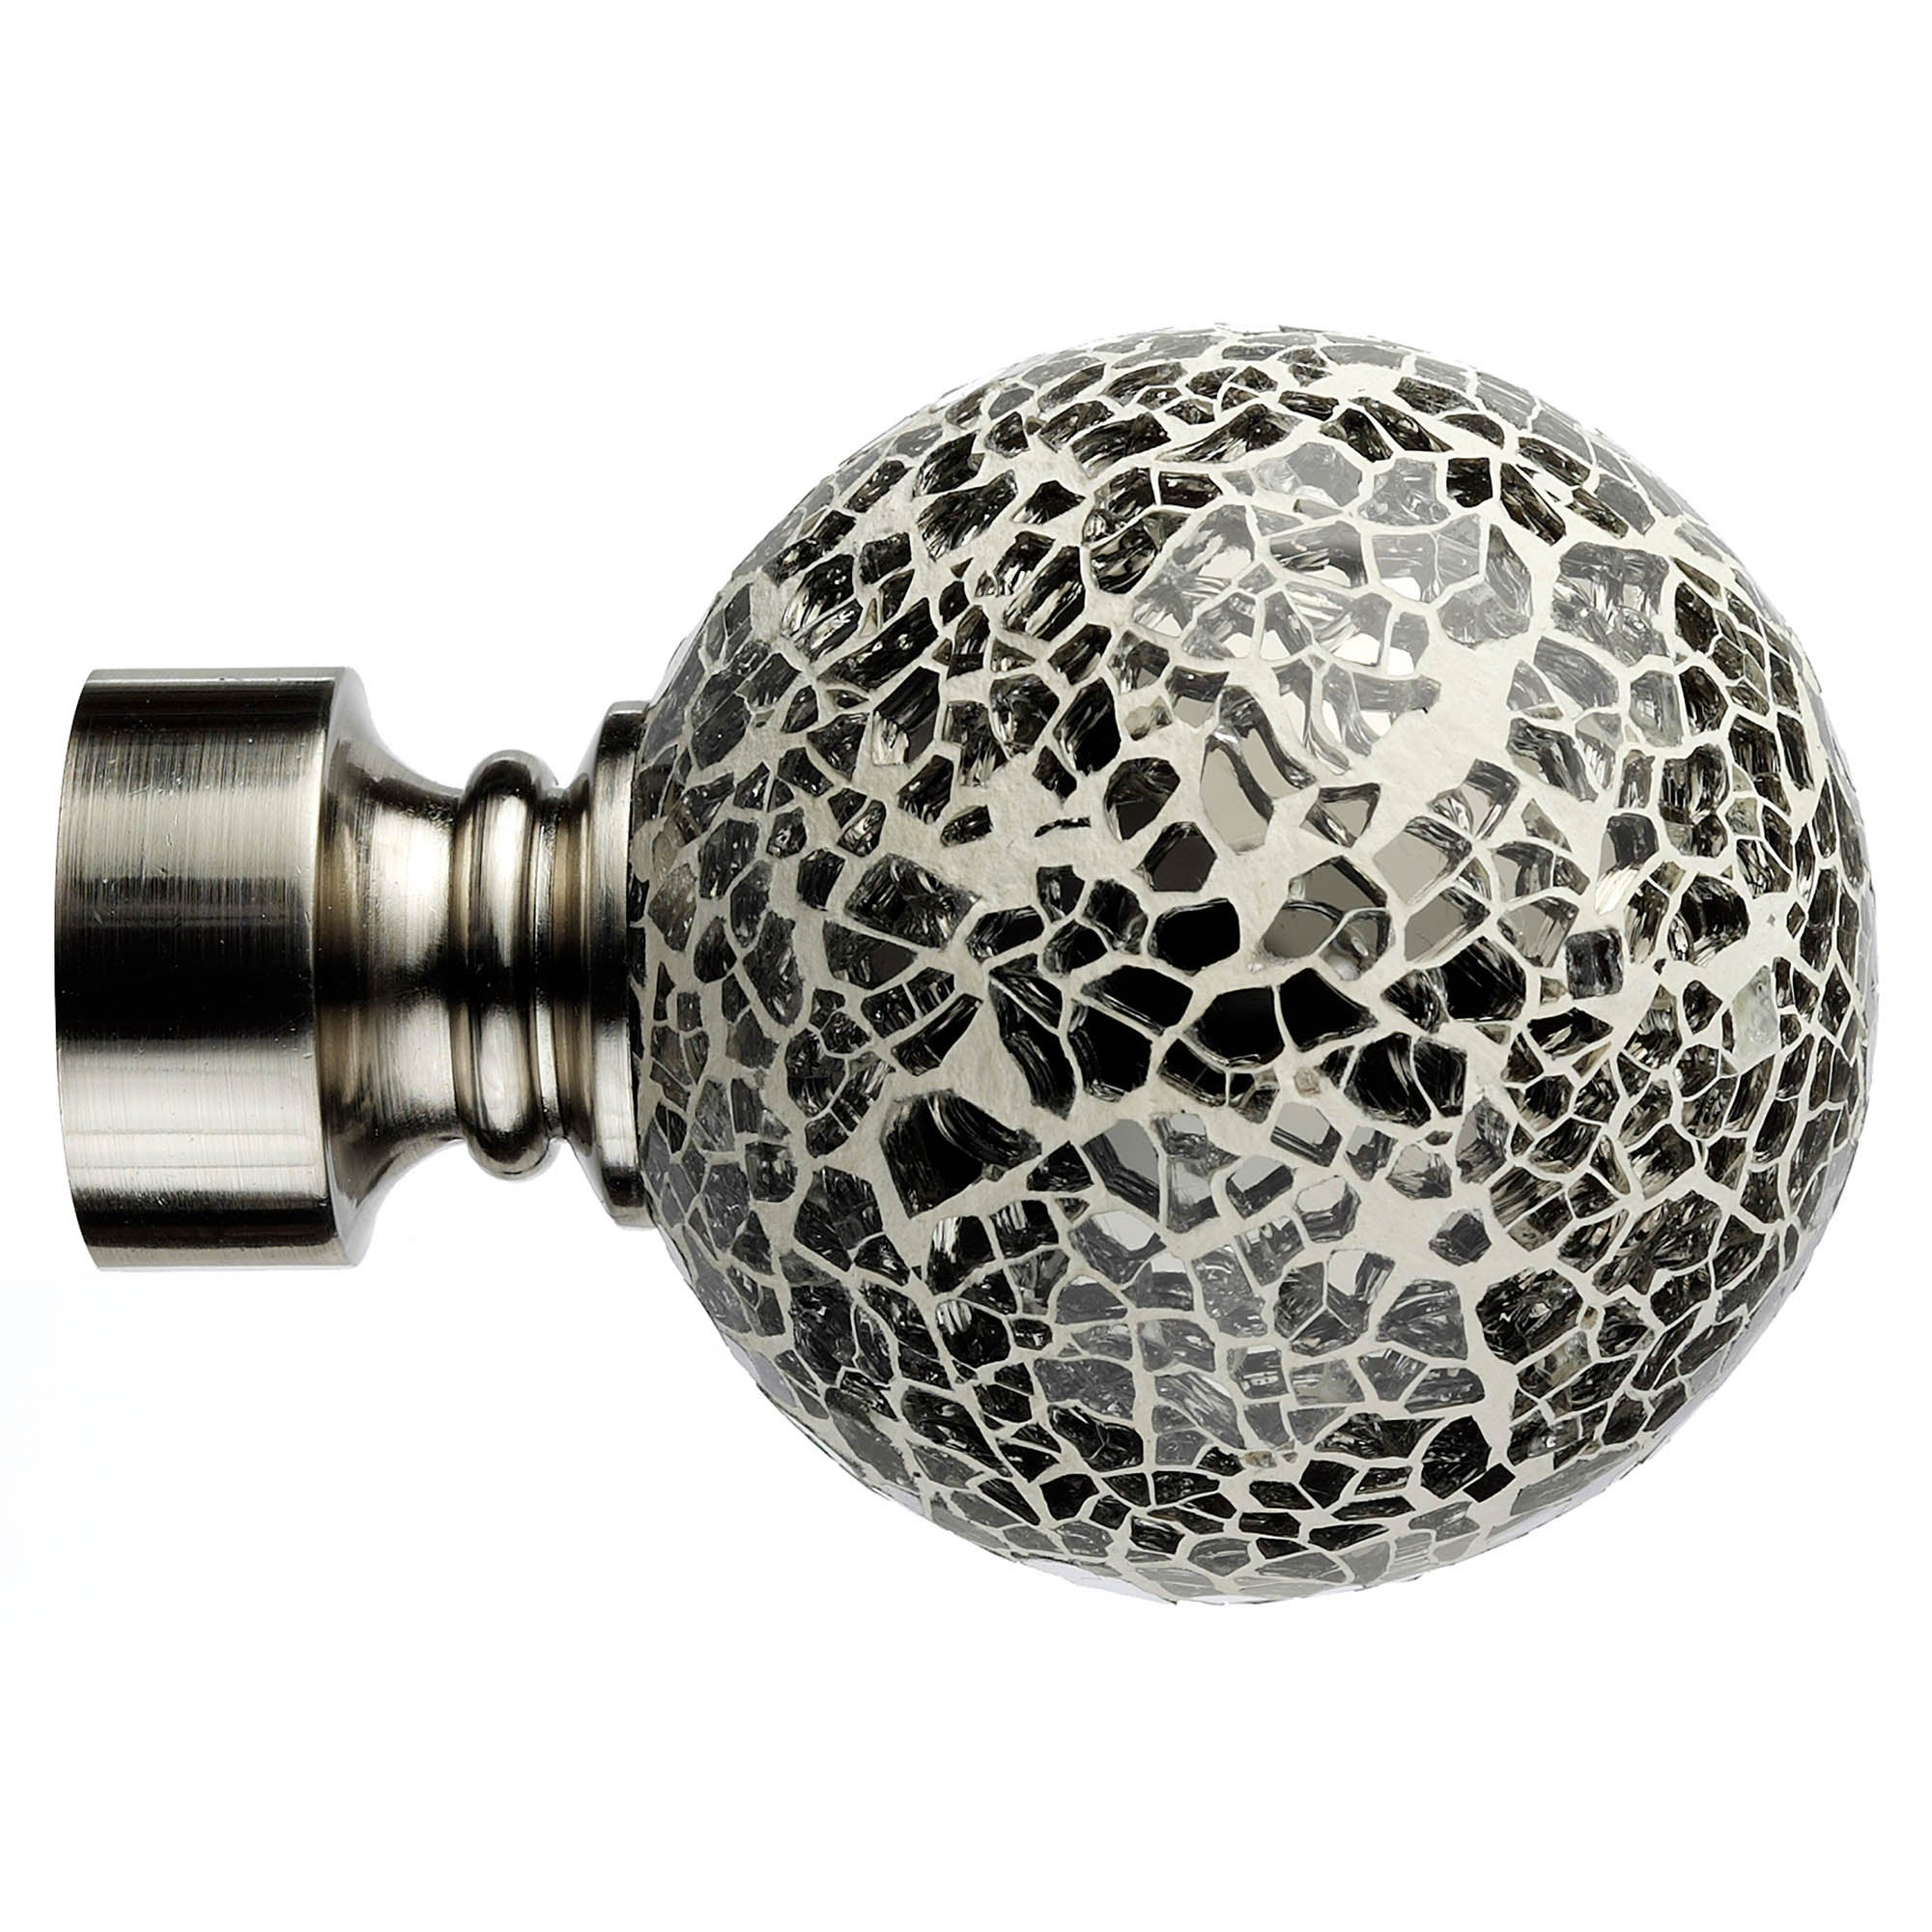 Mix And Match Collection Mirrored Ball Finials